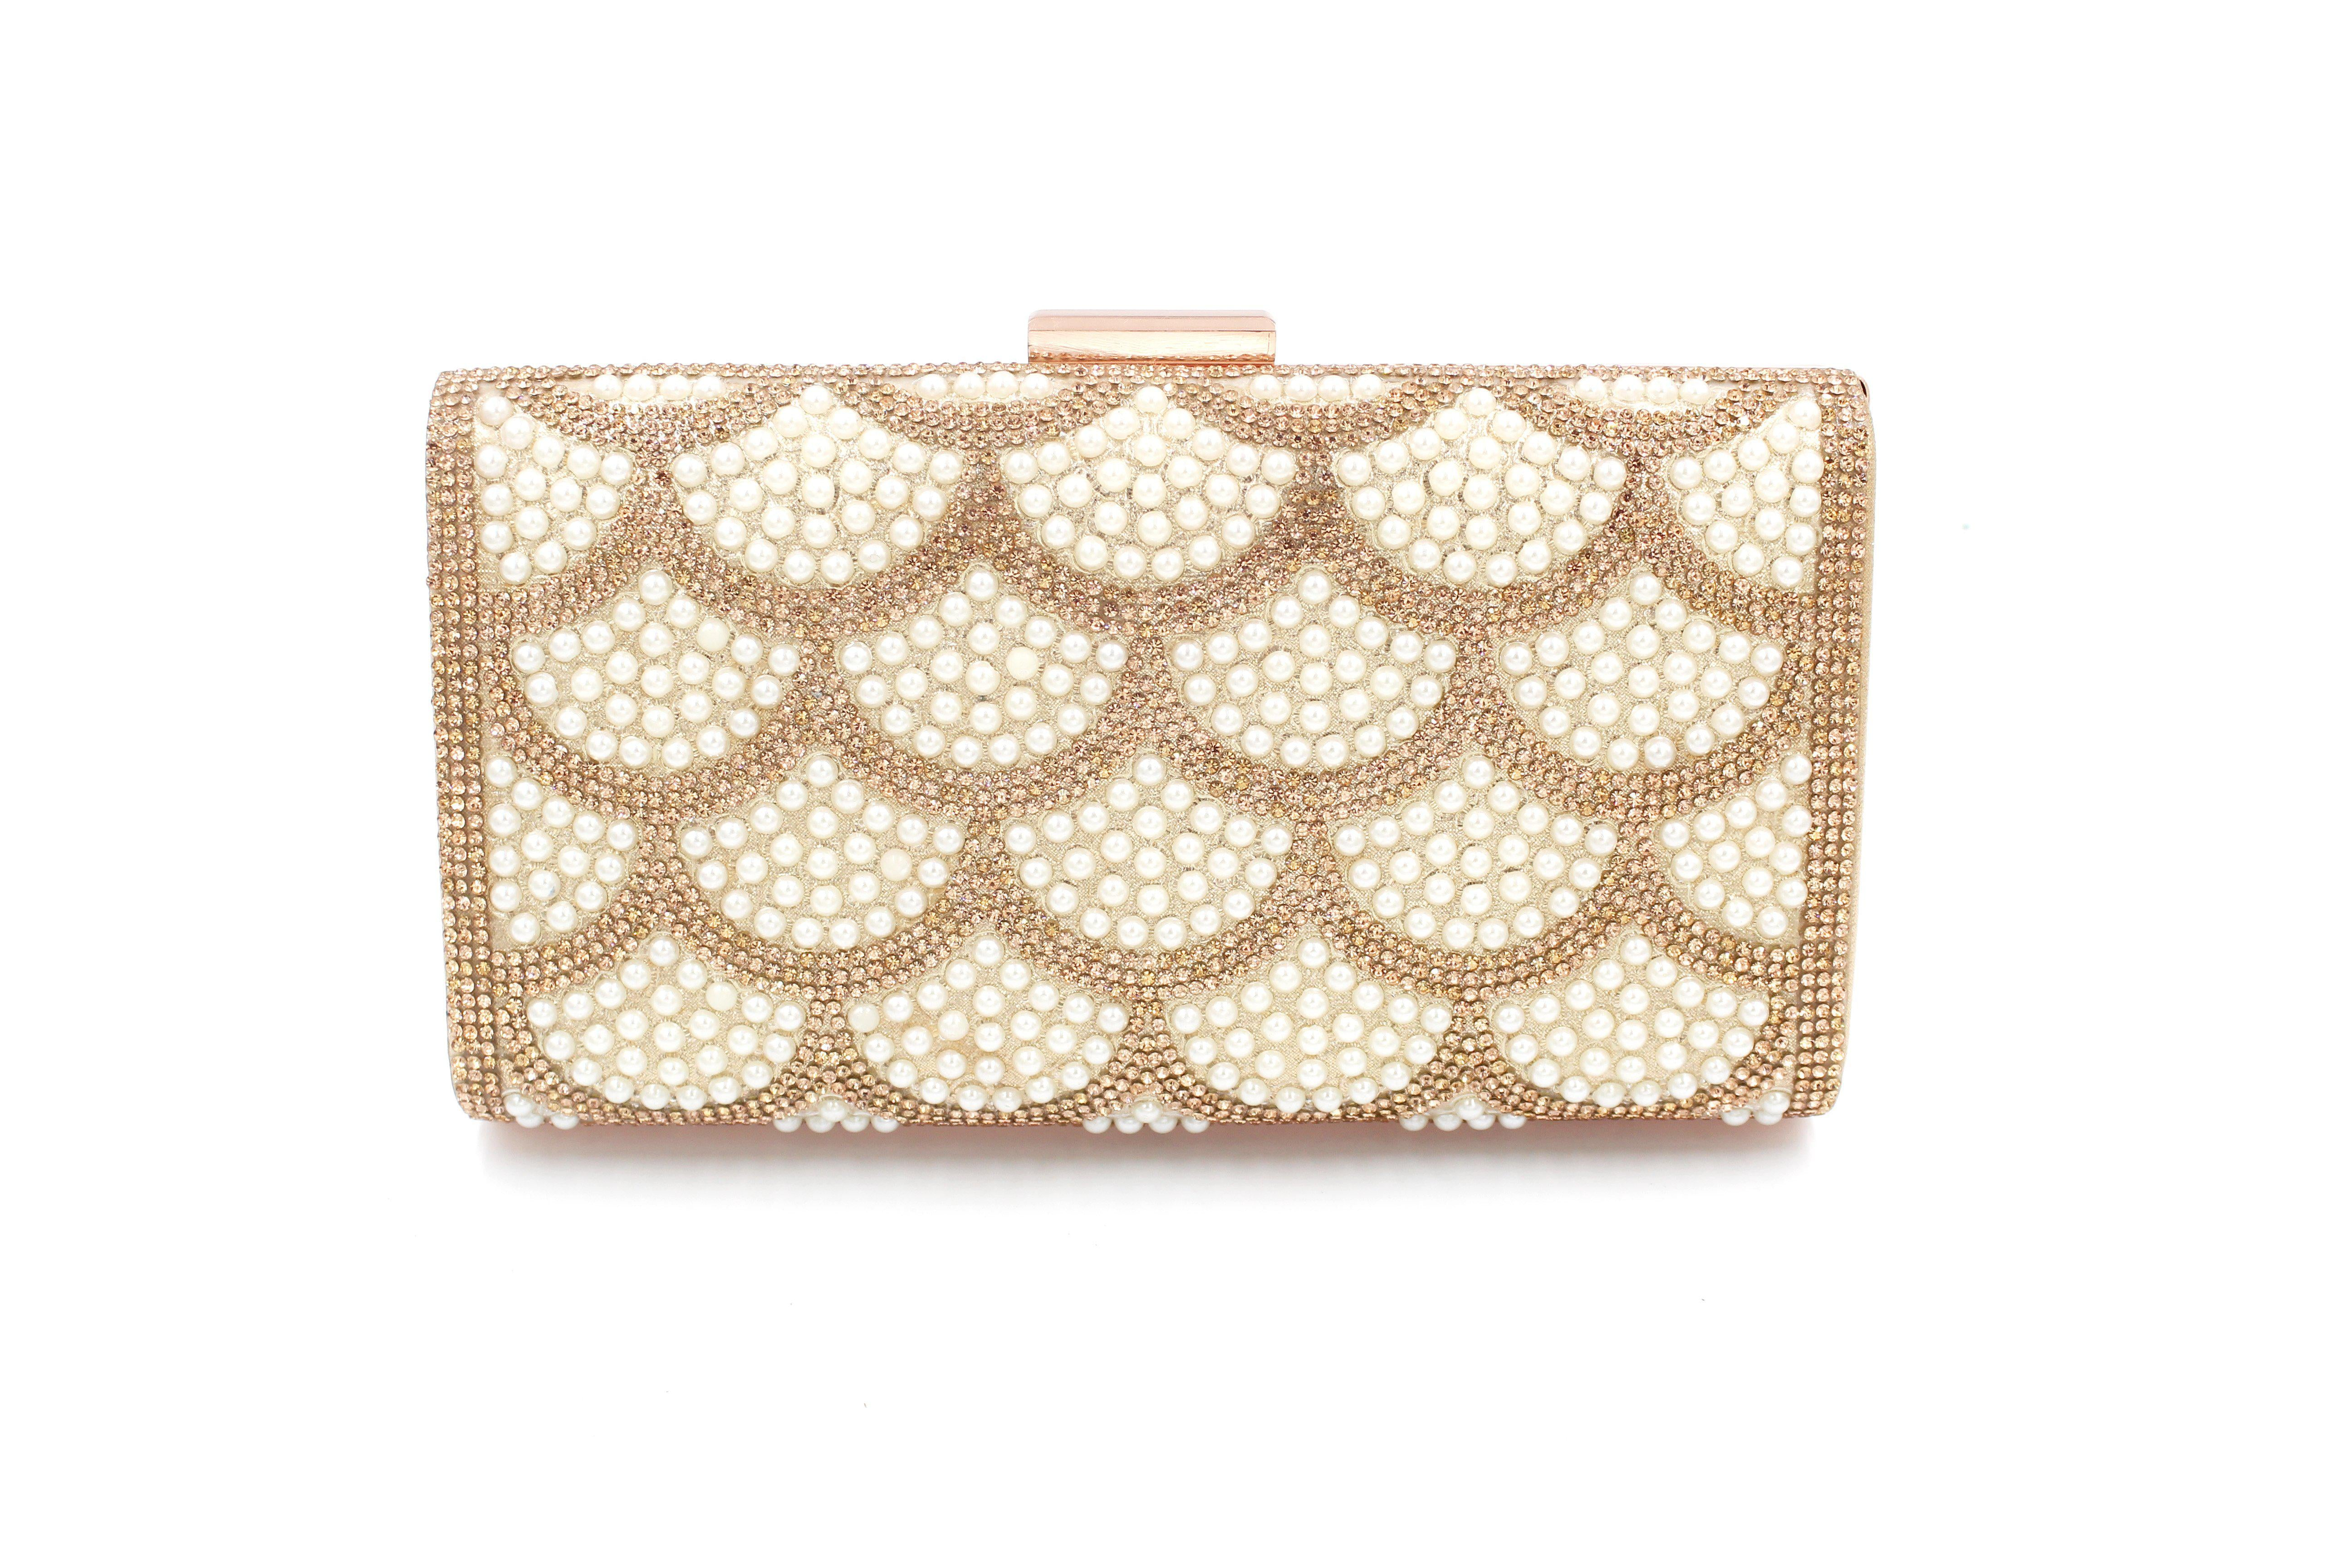 Pearl & Diamante Pattern 2 Clutch Bag With Long Shoulder Chain